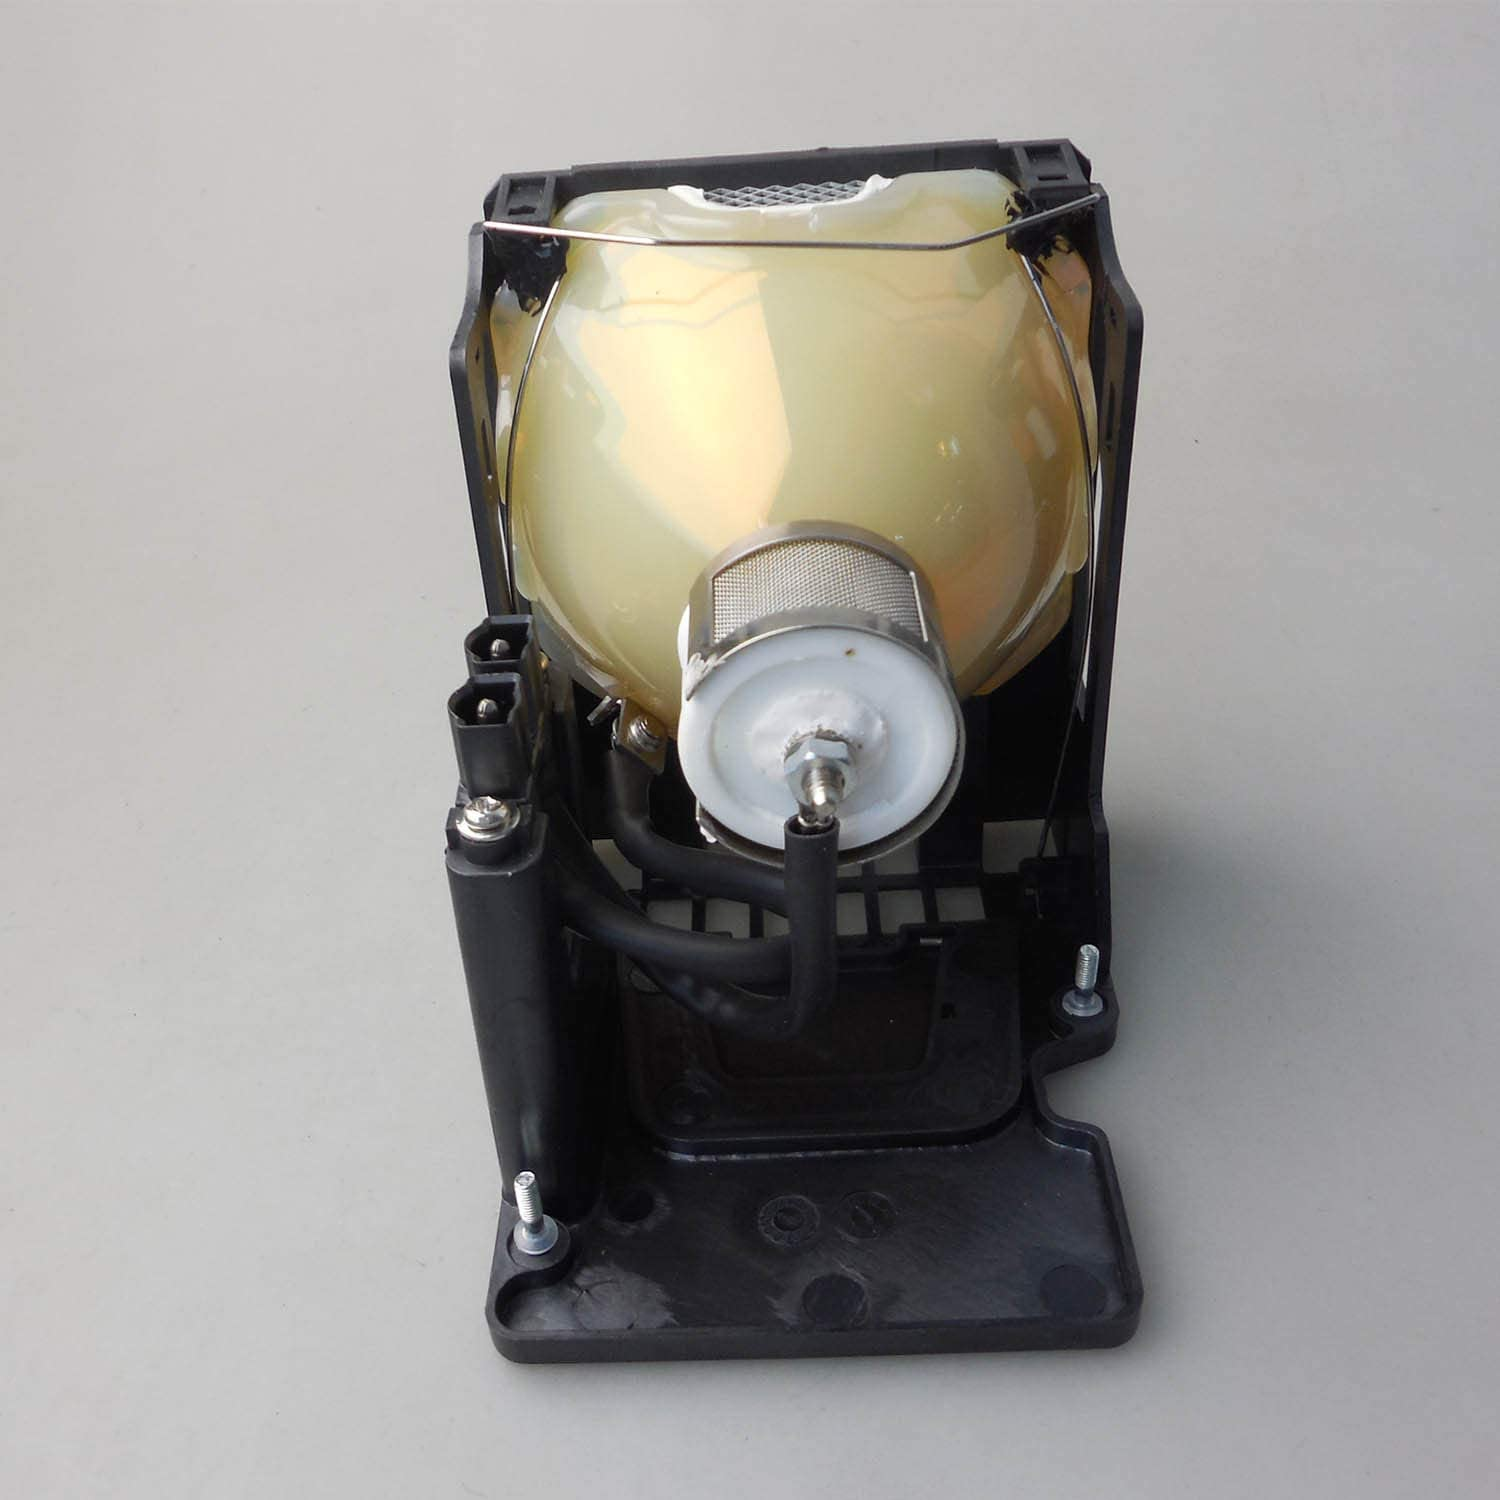 CTLAMP VLT-XL5950LP Original Projector Lamp Assembly with USHIO OEM Bulb Compatible with Mitsubishi LVP-XL5900U LVP-XL5950 LVP-XL5980 LVP-XL5980LU LVP-XL5980U XL5980 XL5980LU XL5980U XL5900 XL5900U